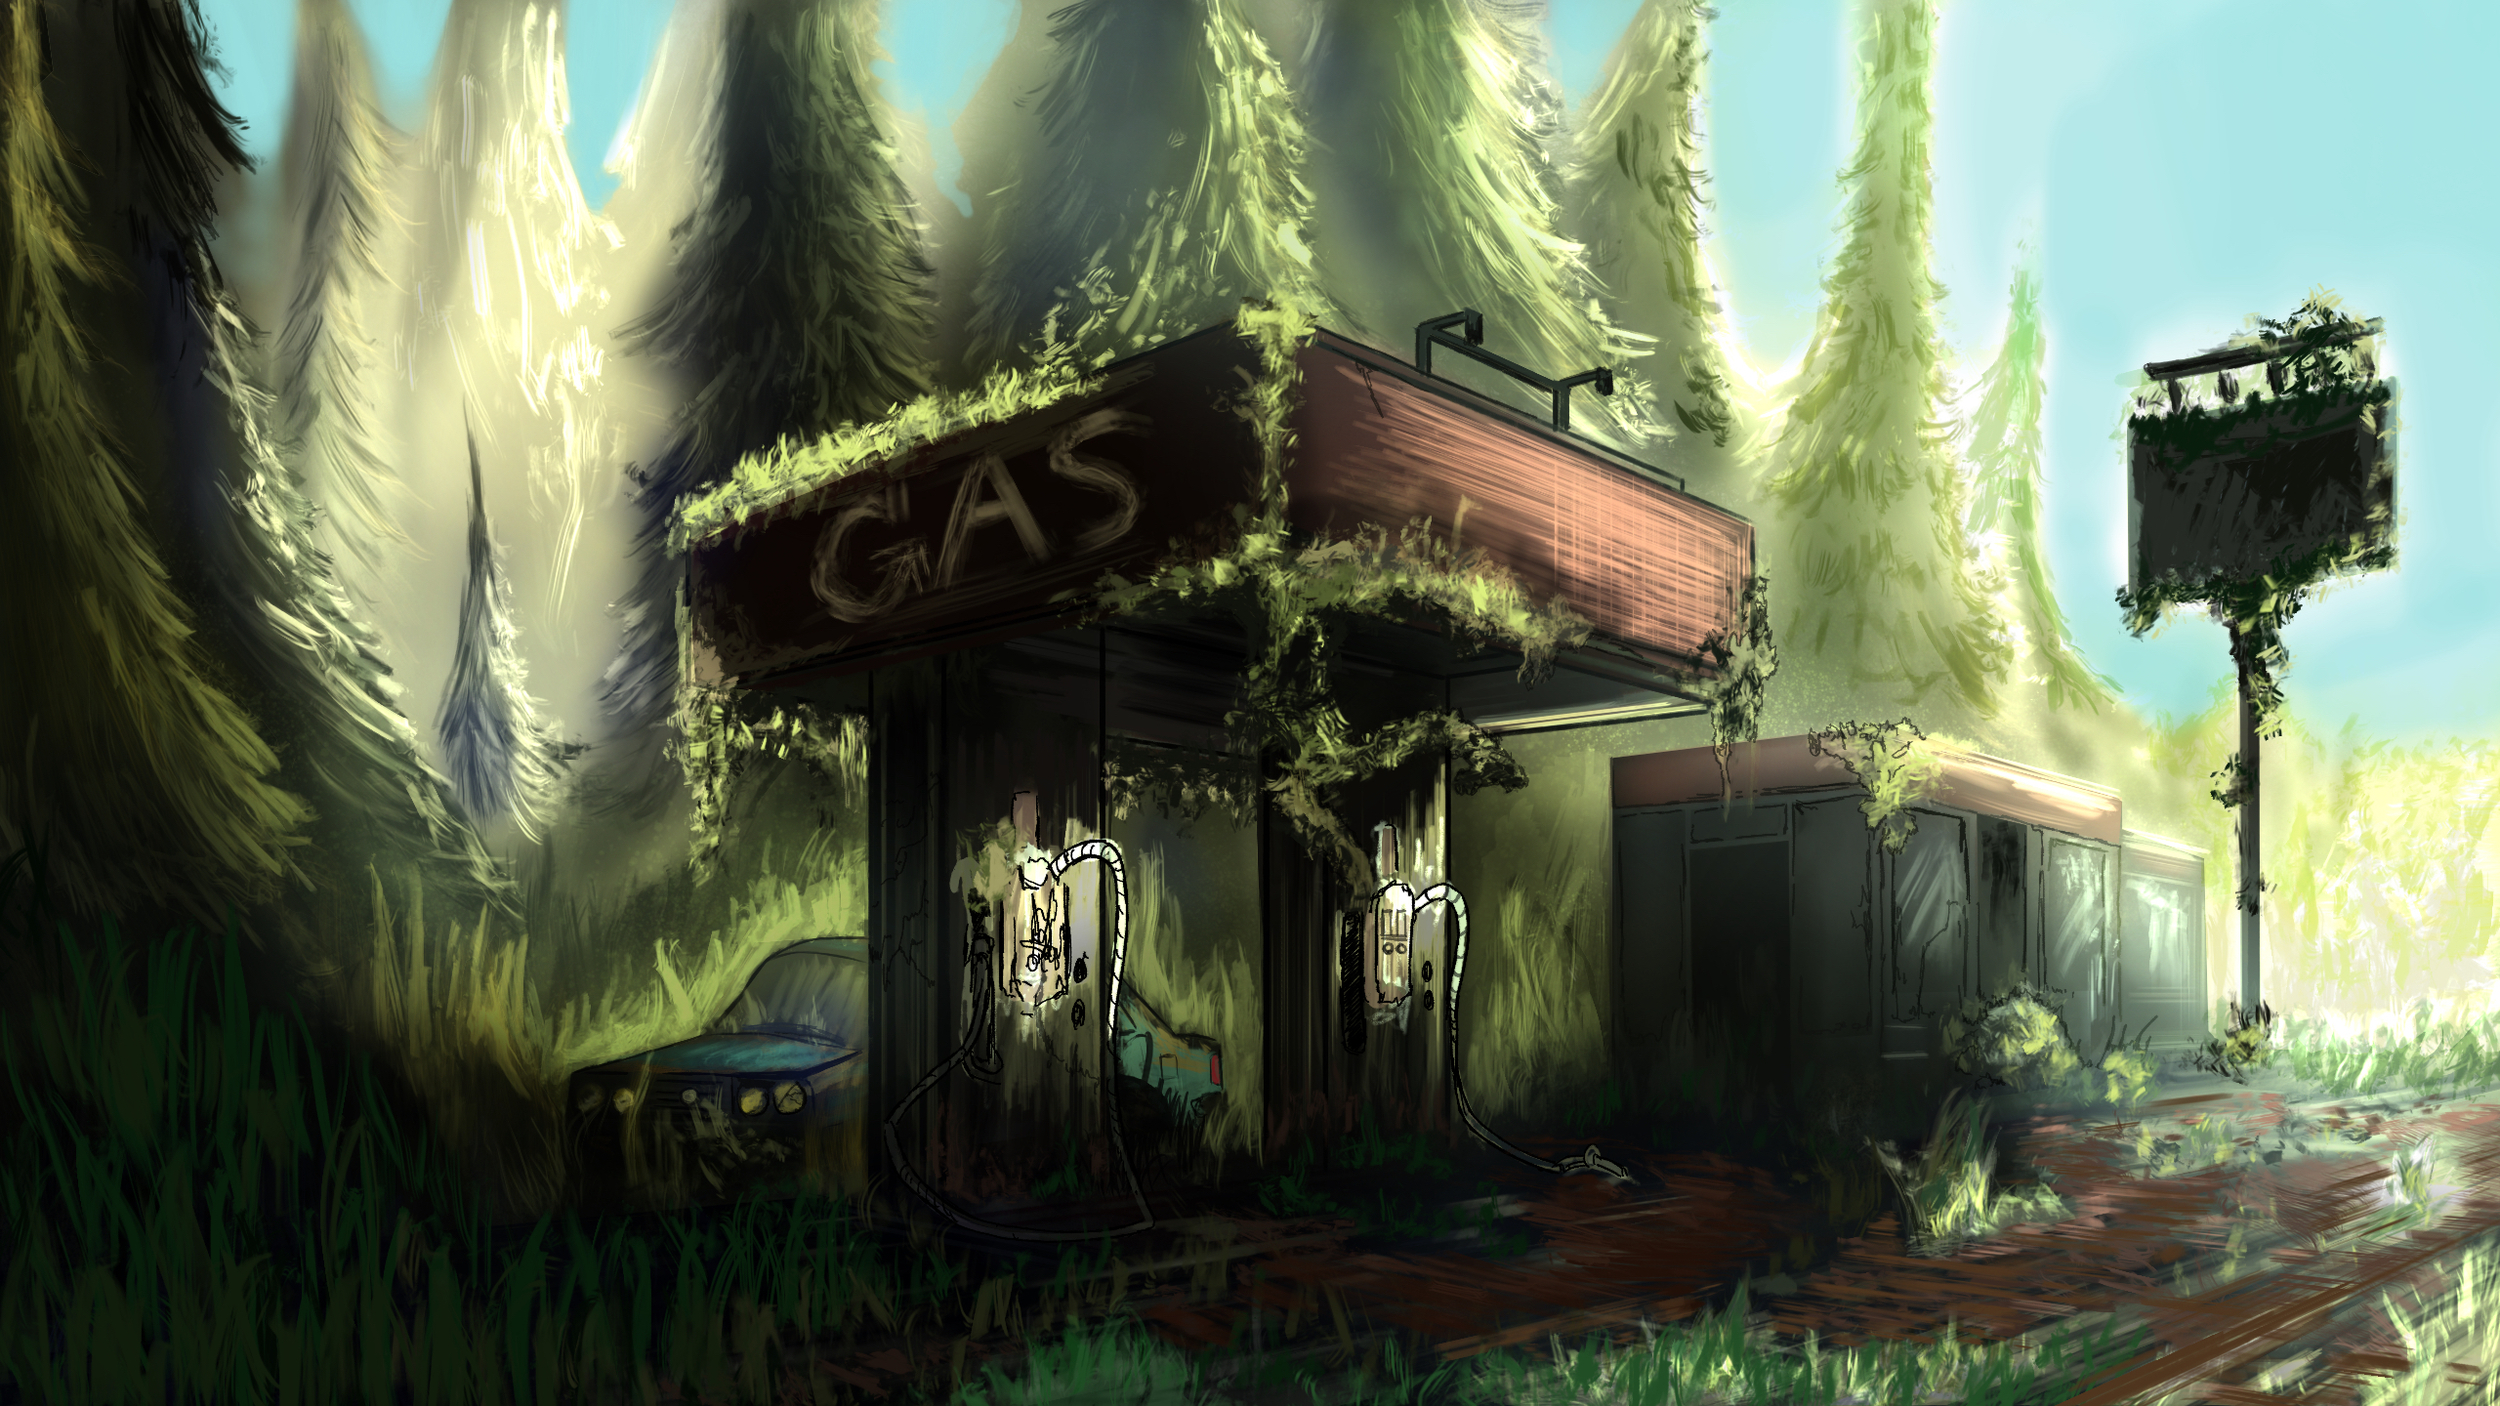 BG_04_GasStation_ScottMLee.jpg